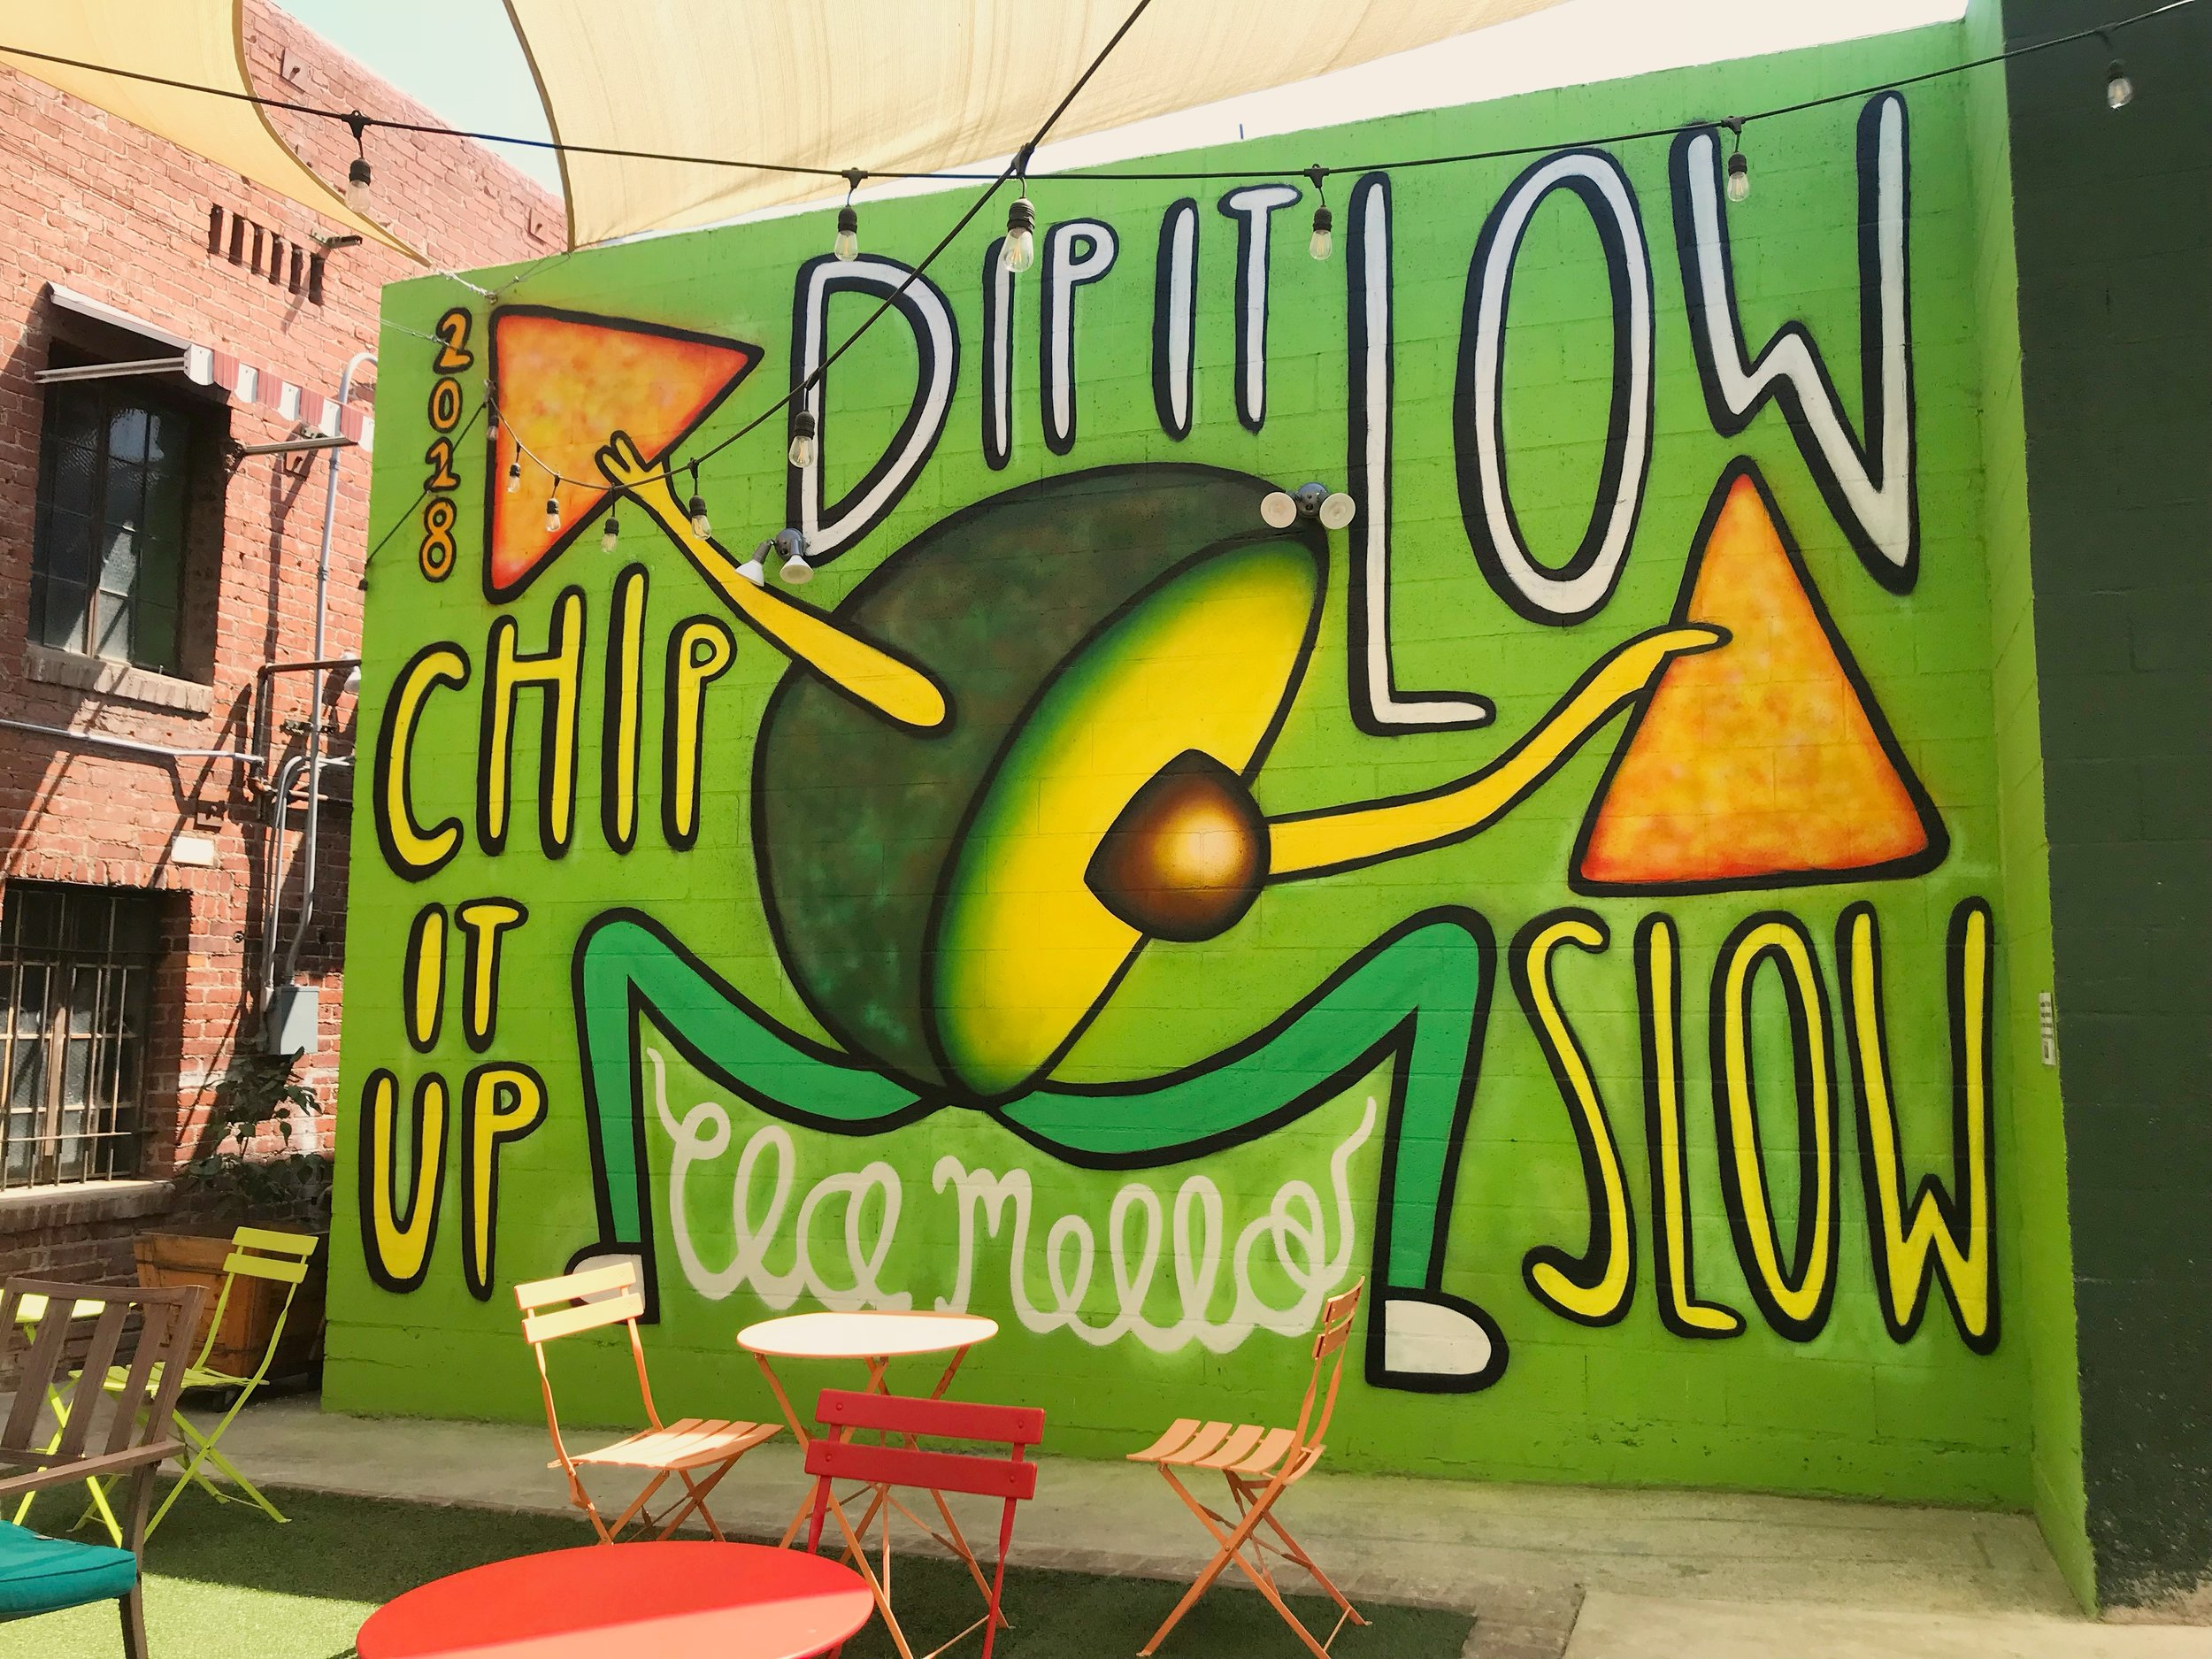 dip it low,chip it up slow - With Love Cafe & Market, Los Angeles2018